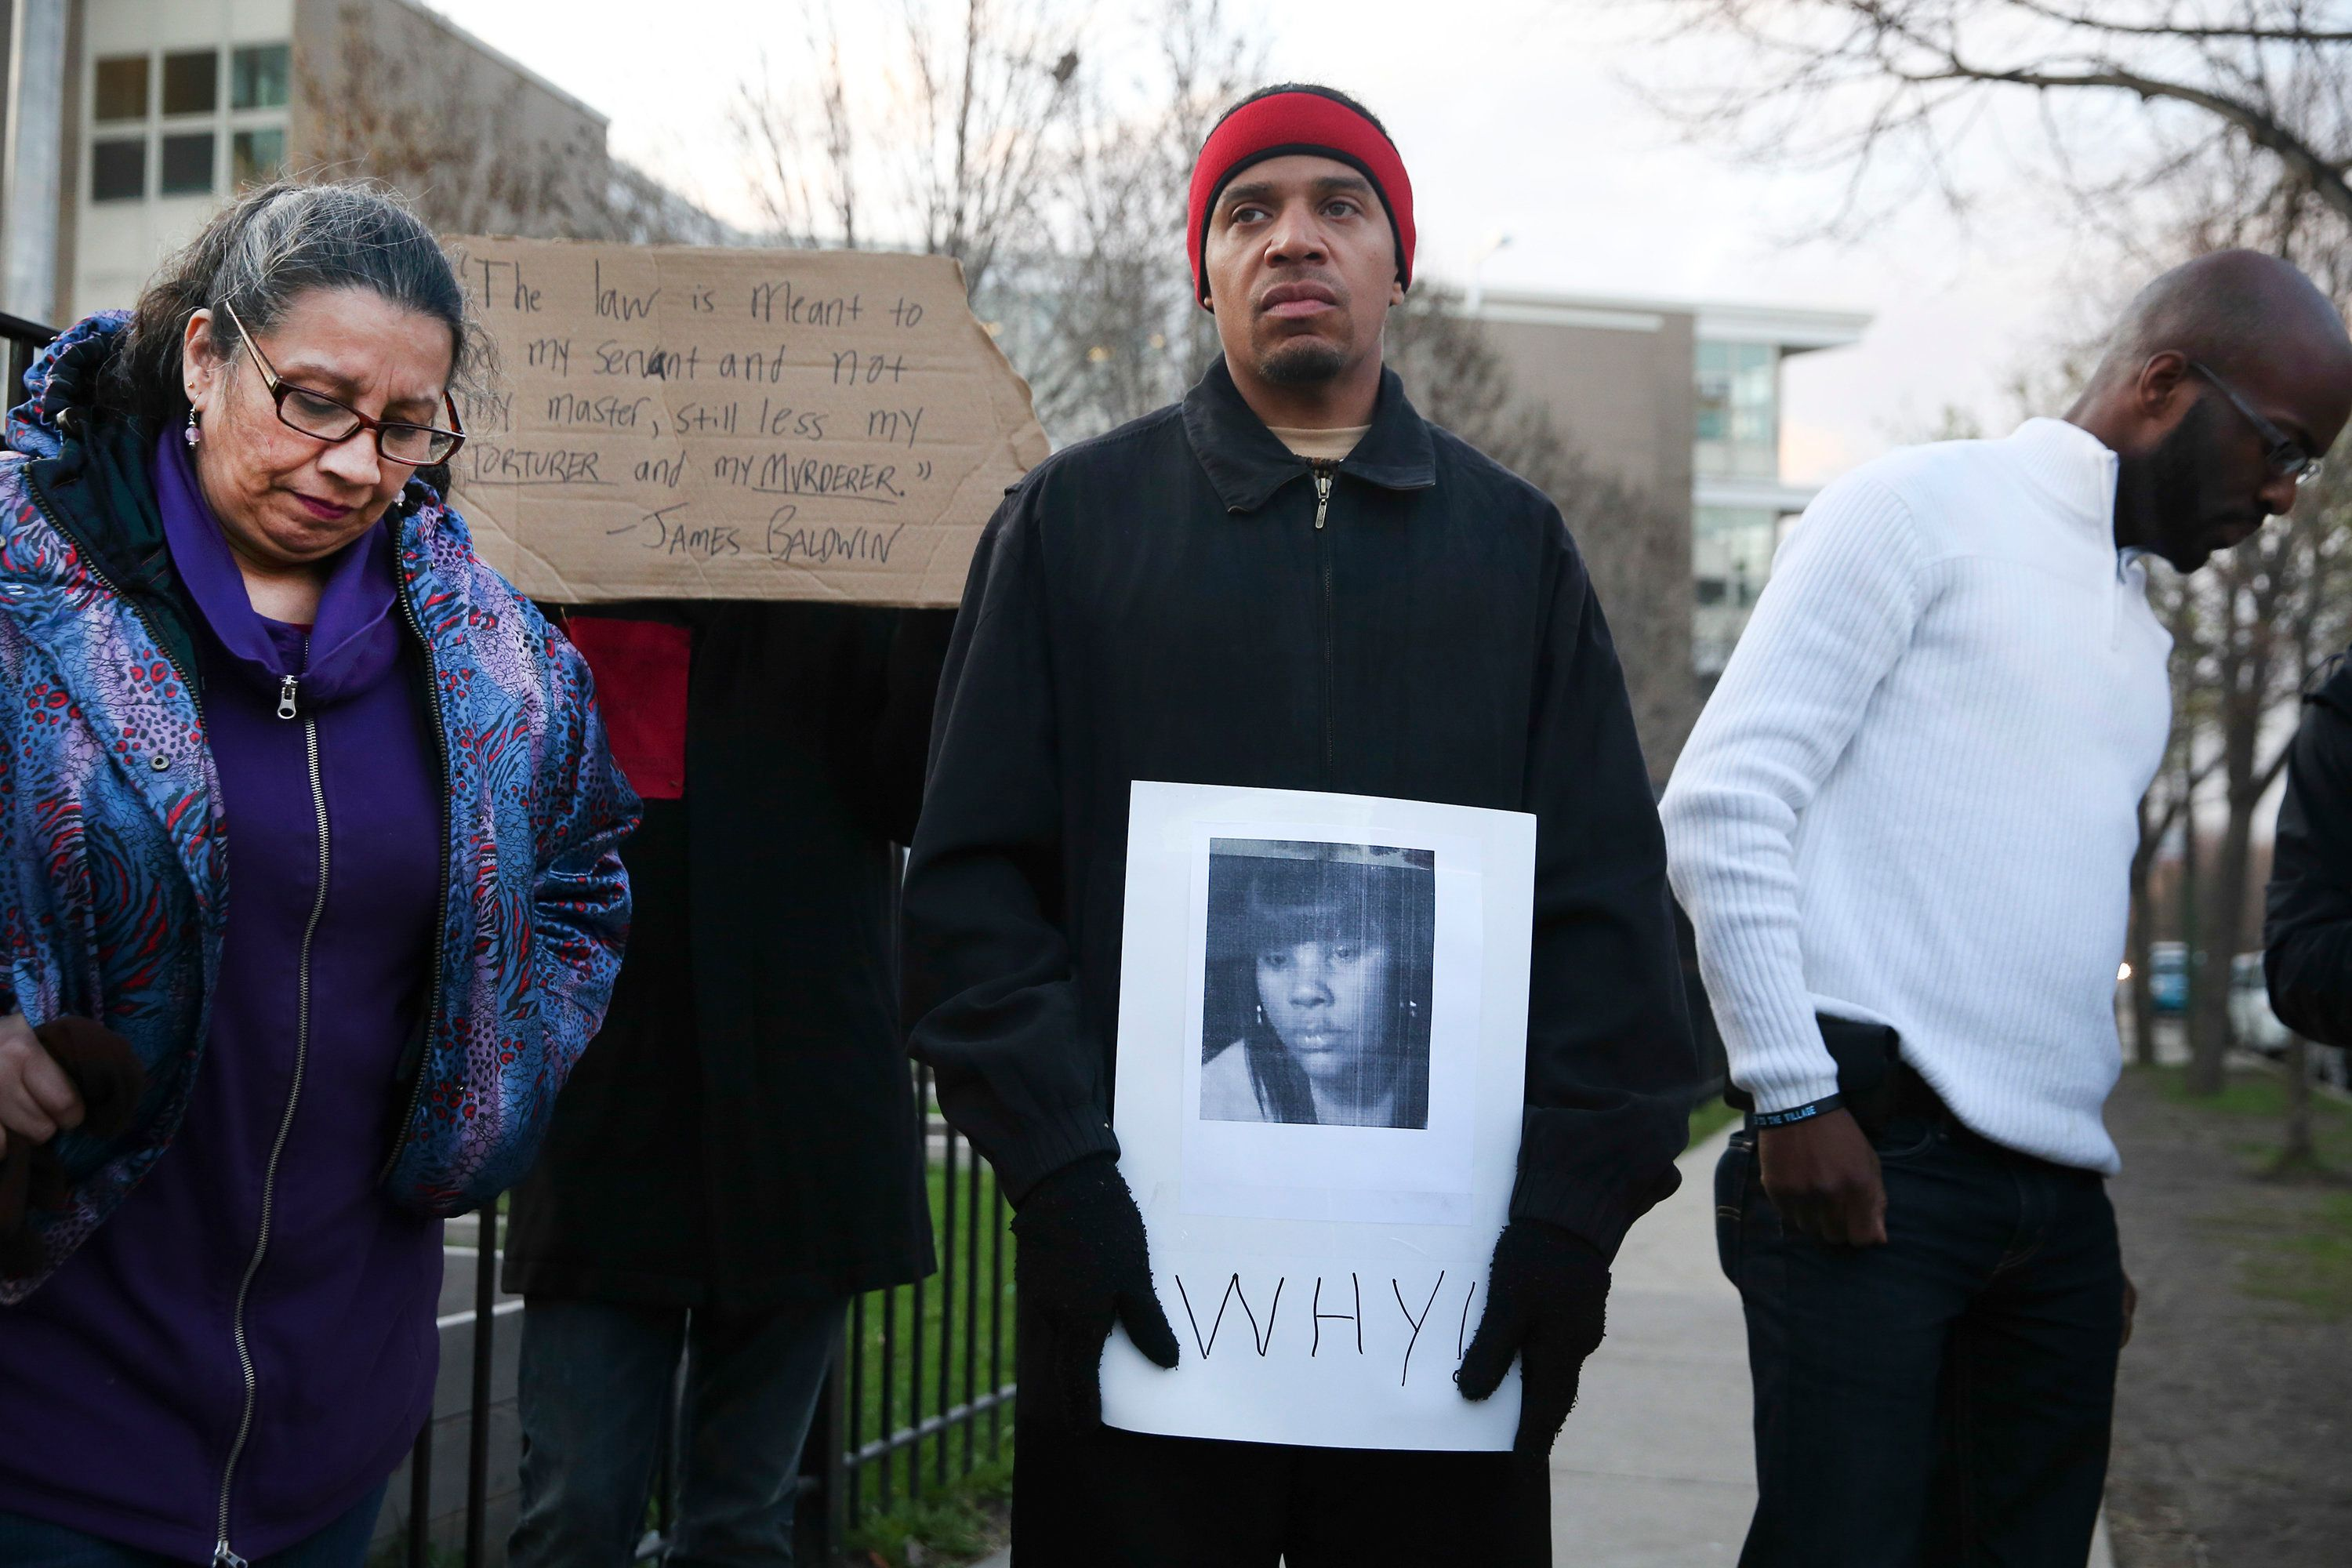 Donald Lightfoot holds a sign in support of Rekia Boyd while joining other protesters in Chicago on Monday, April 20, 2015. (Nuccio DiNuzzo/Chicago Tribune/TNS via Getty Images)